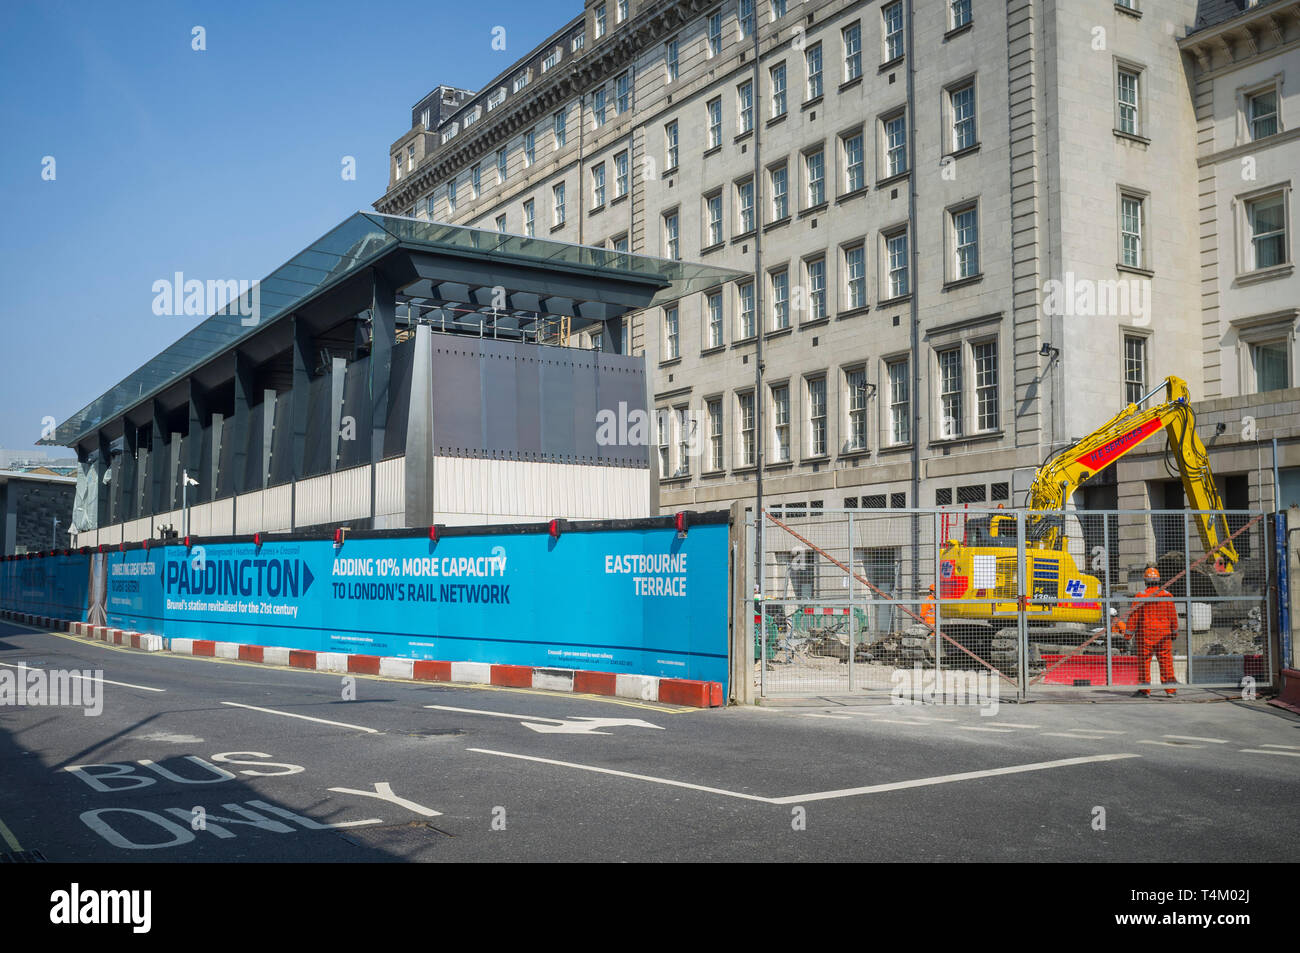 Building work on the new Crossrail expansion at Eastbourne Terrace by Paddington Station, London - Stock Image